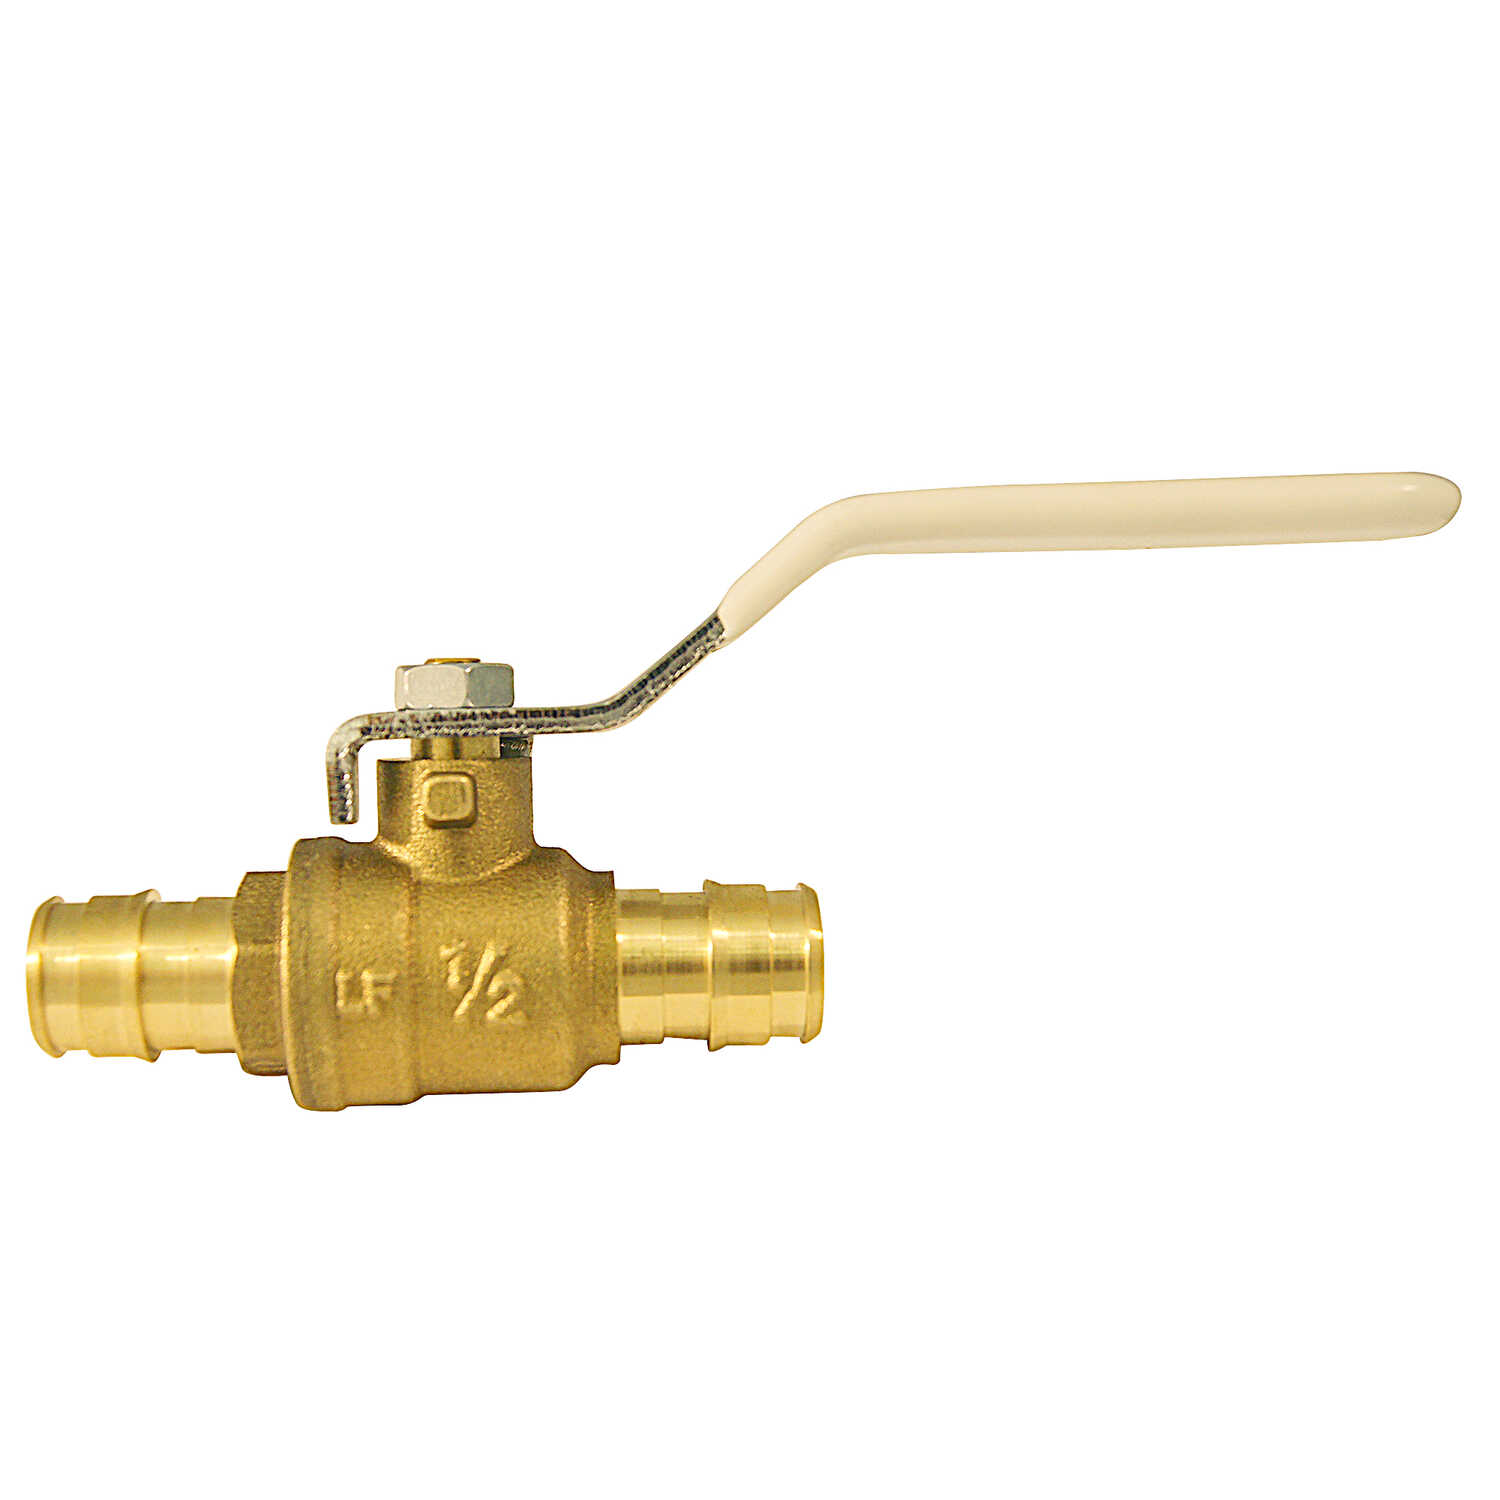 Apollo  Expansion PEX A  Ball  Ball Valve  1/2 in. Expansion Pex A   x 1/2 in. Dia. Expansion Pex A